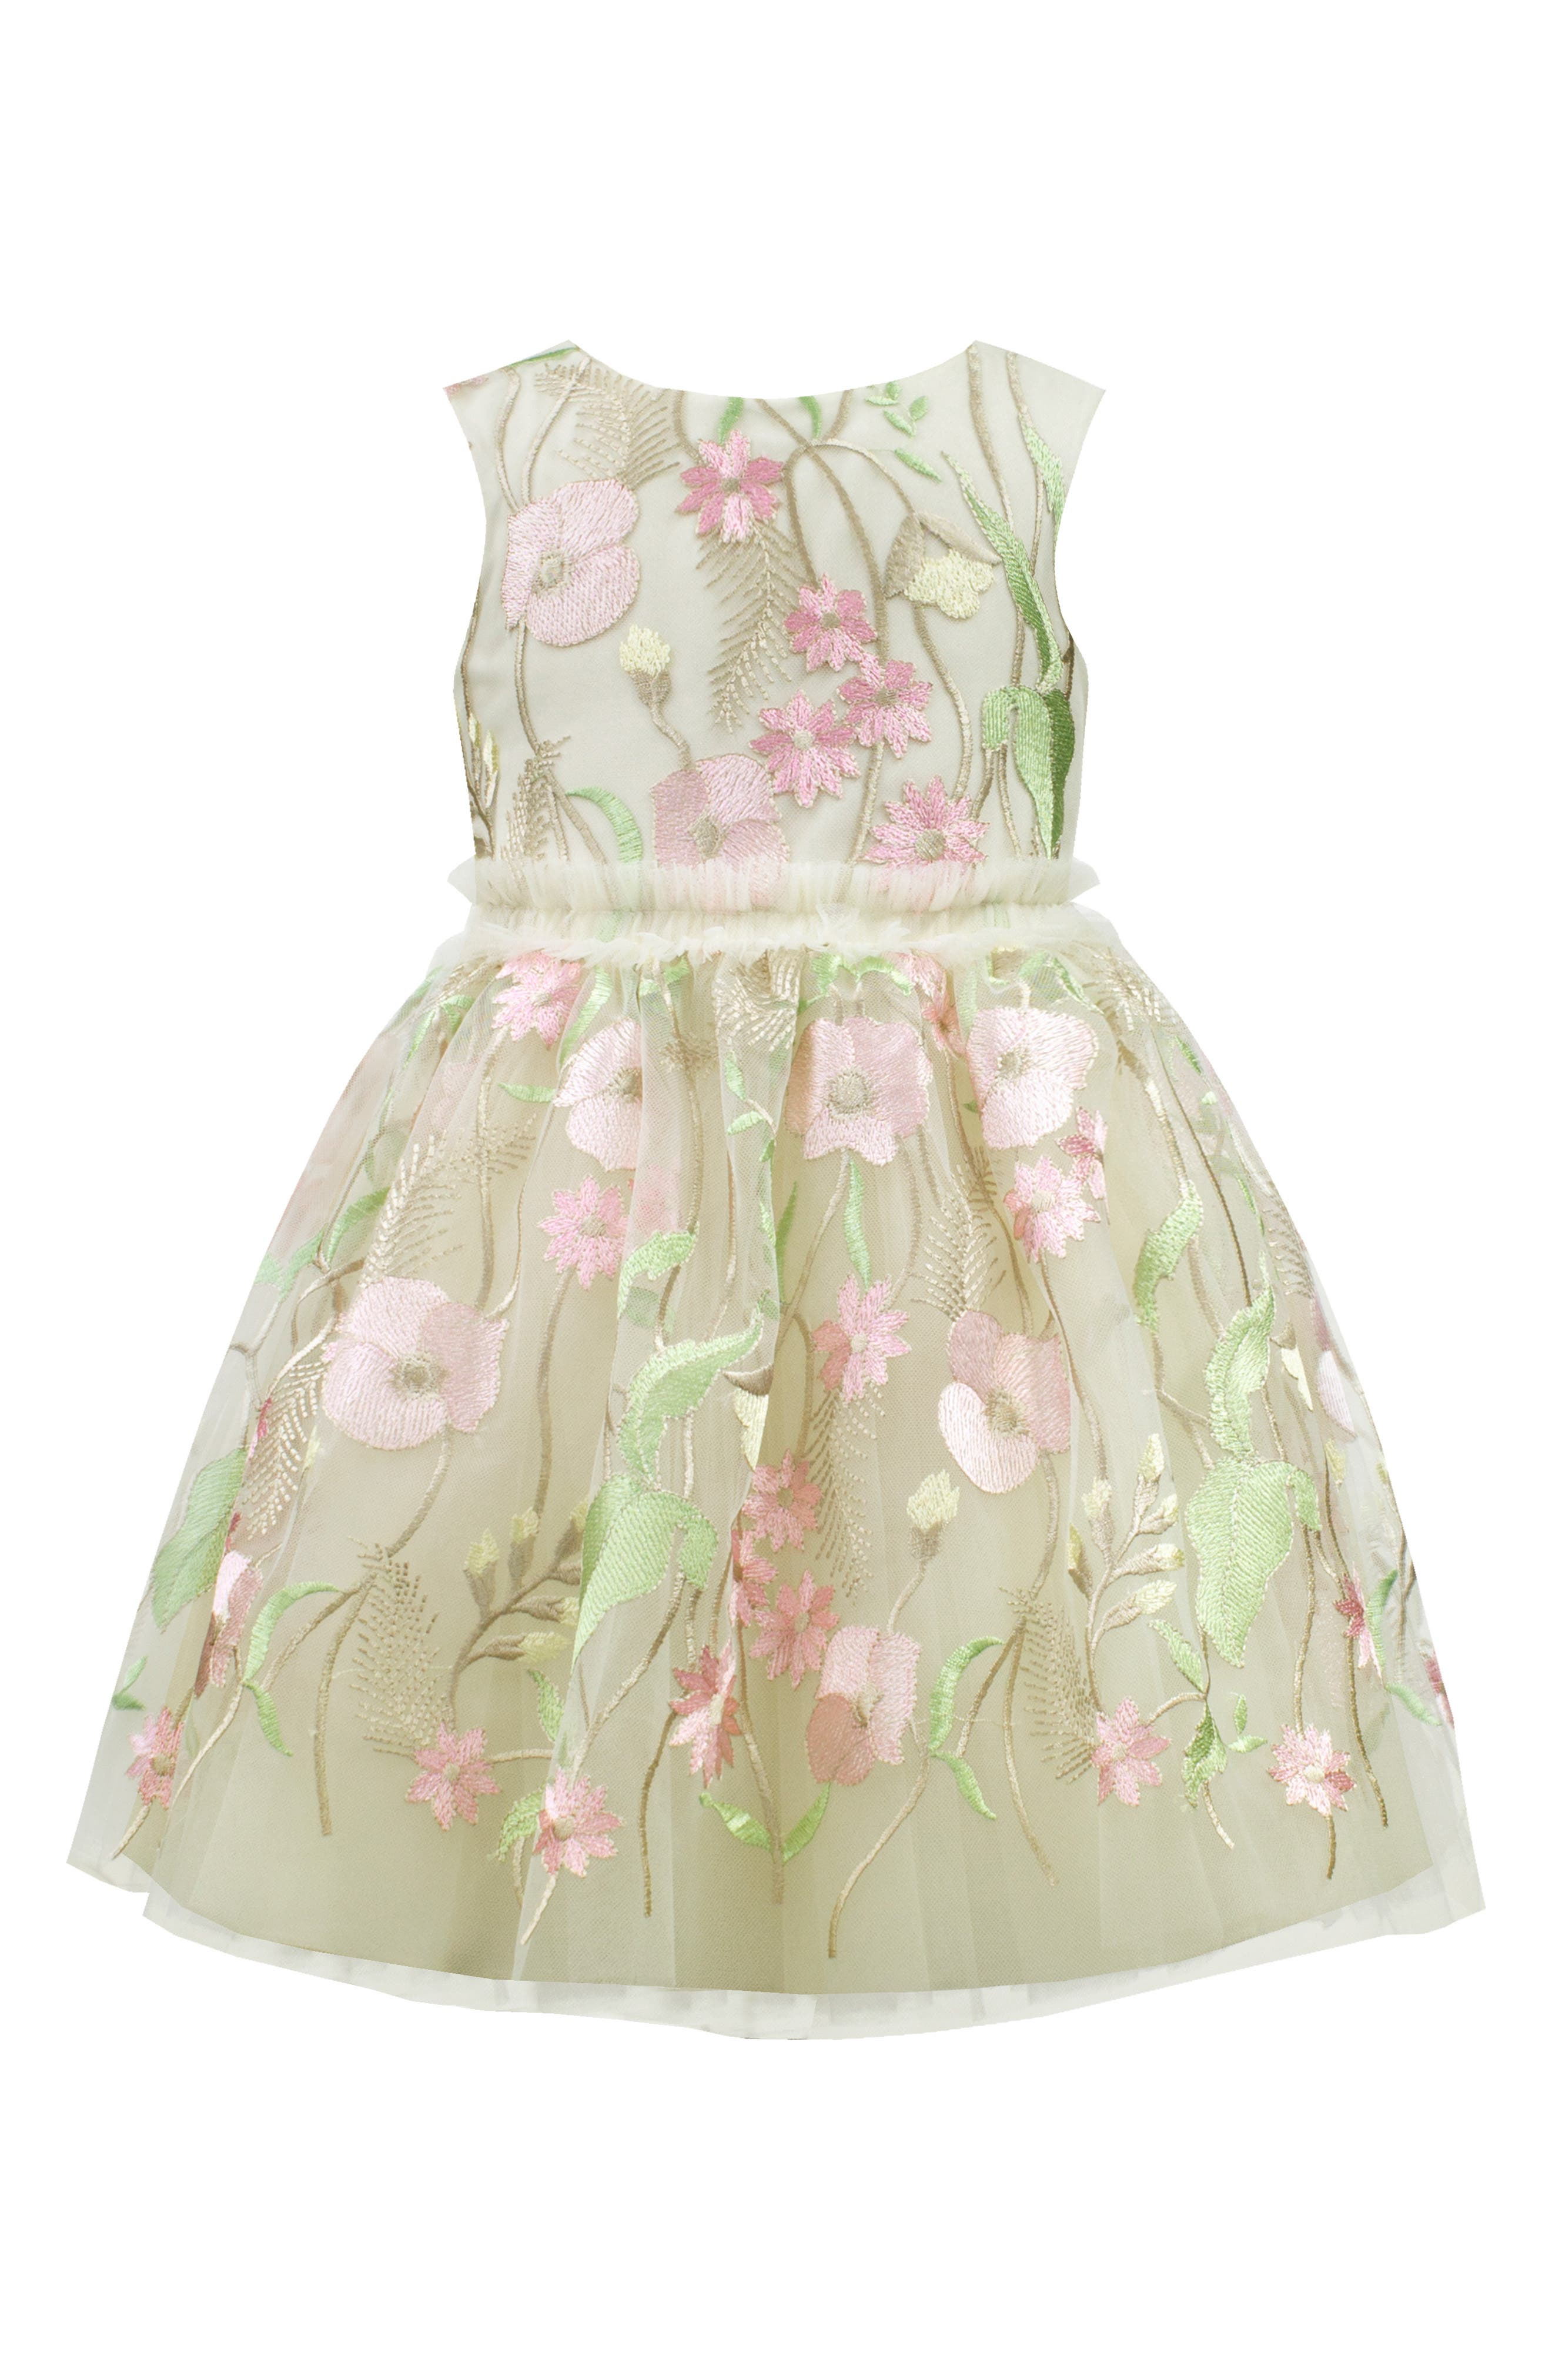 DAVID CHARLES Pastel Embroidered Tulle Dress, Main, color, IVORY/ PINK